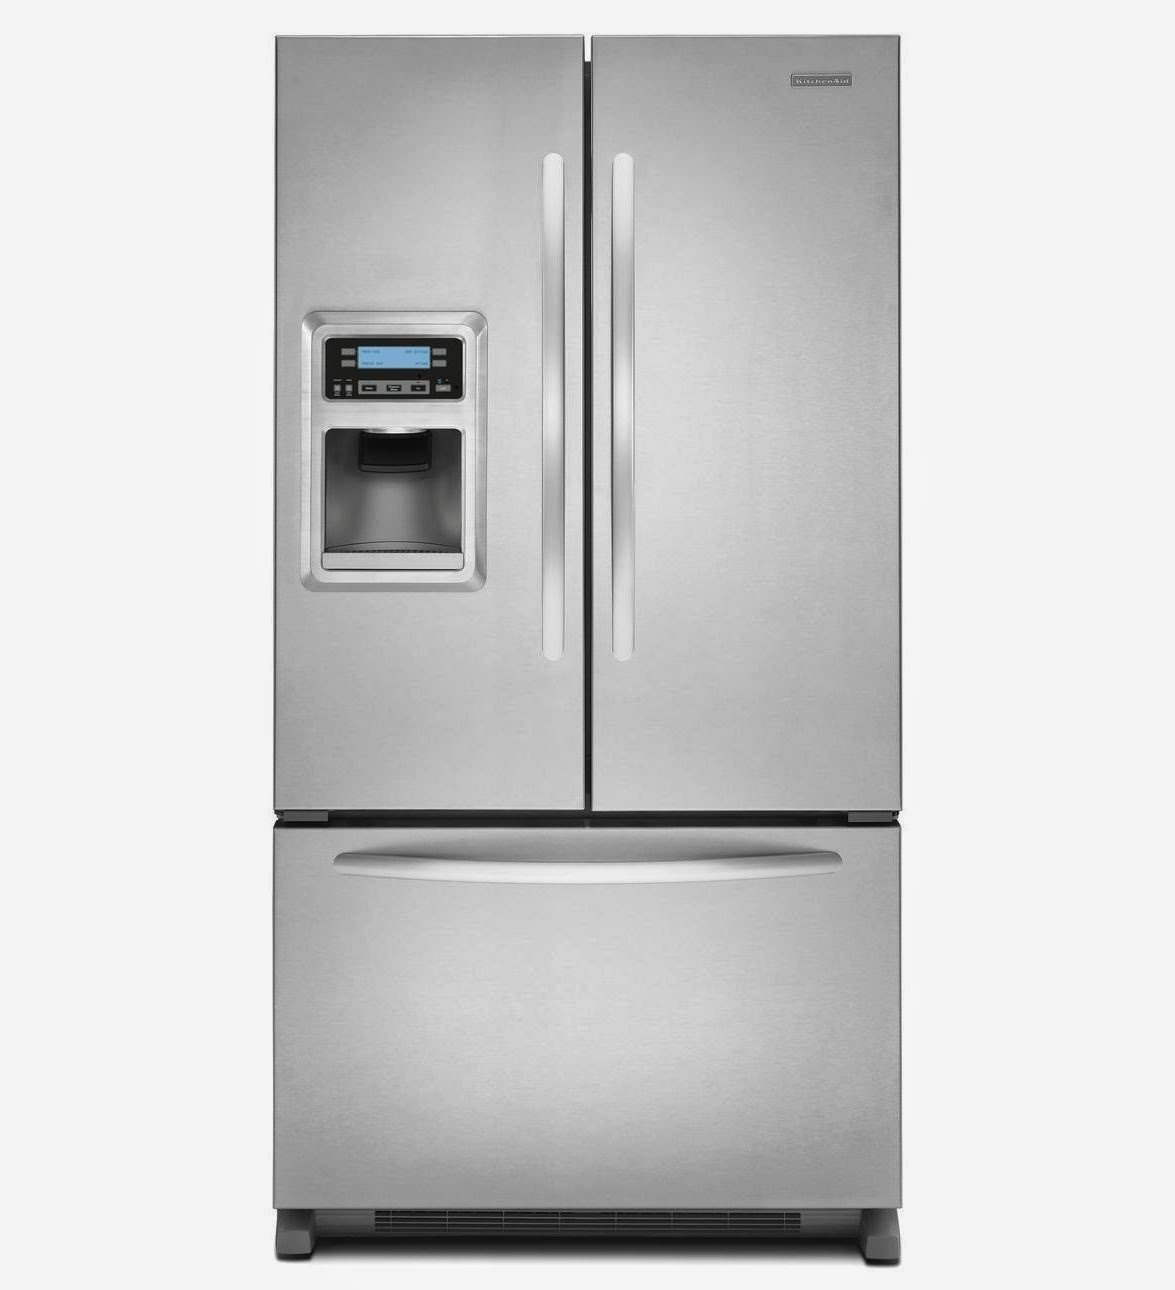 Kitchenaid Black Stainless Steel Counter Depth French Door: Counter Depth Refrigerators Reviews: Kitchenaid Counter Depth Refrigerators